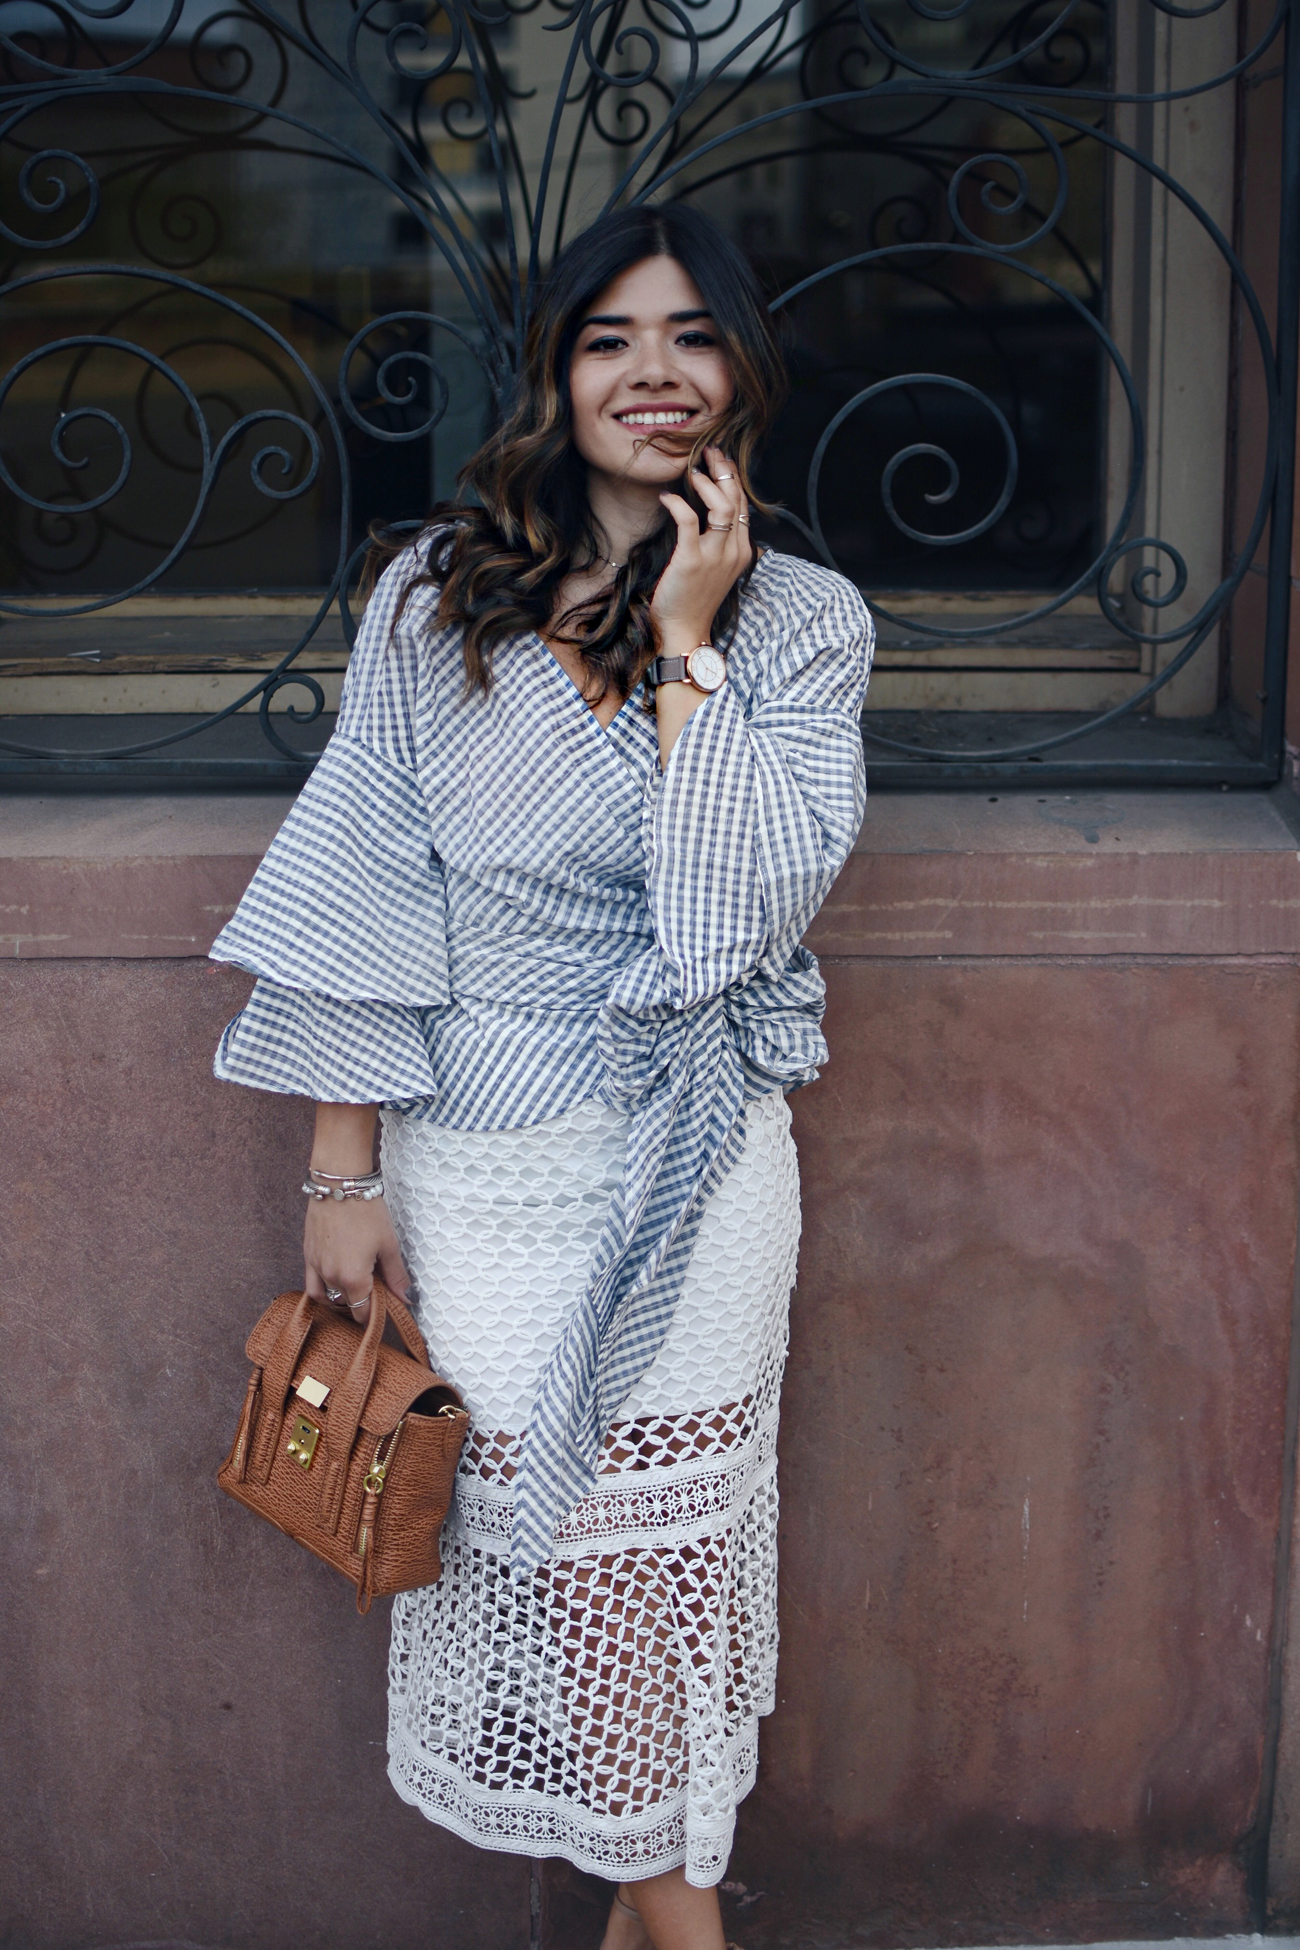 AN ULTRA FEMININE SPRING OUTFIT